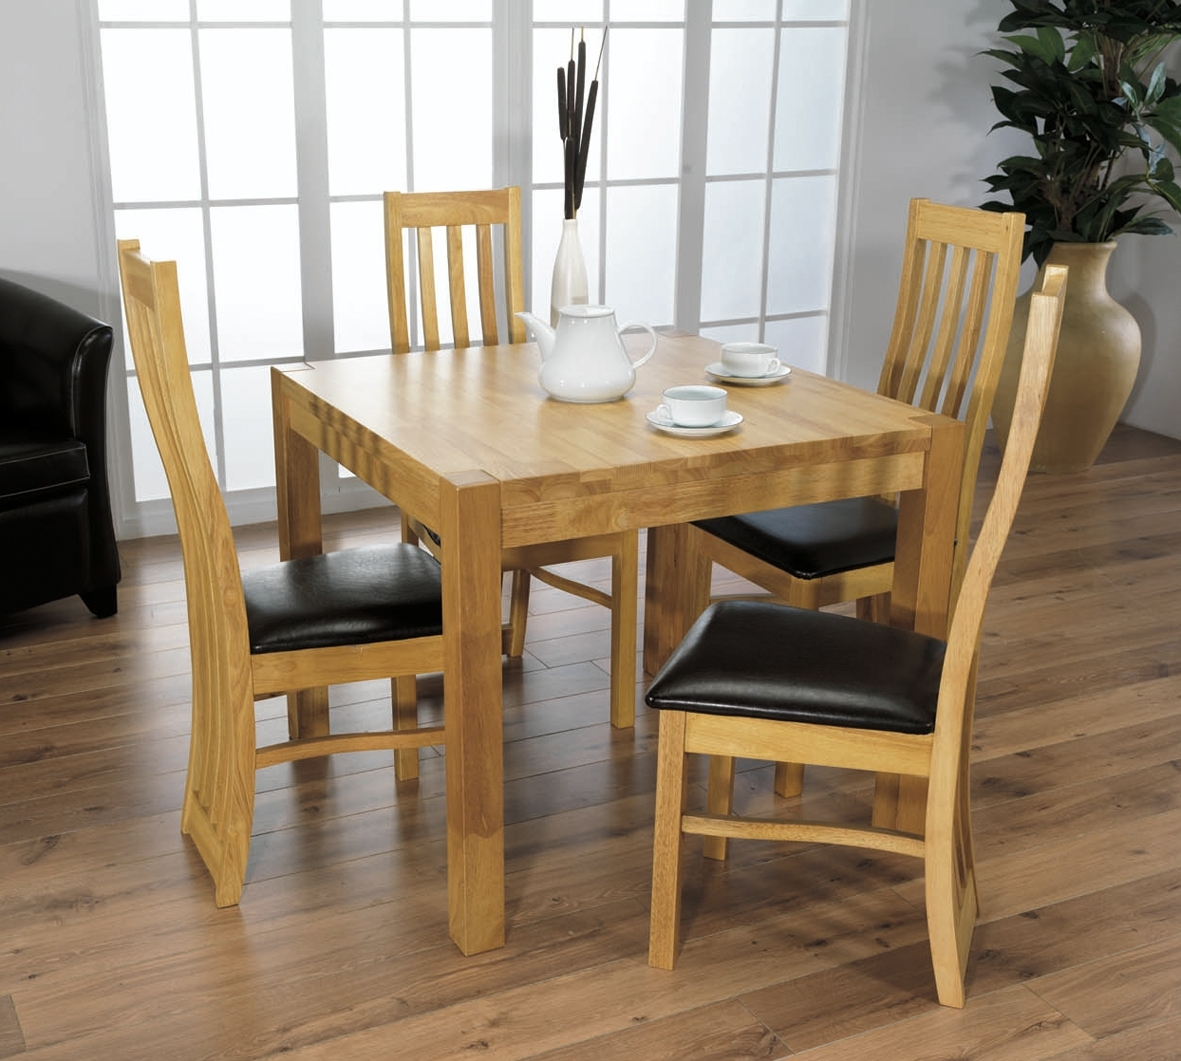 Why A Small Dining Table And Chairs Is A Premium Choice – Blogbeen Intended For Popular Small Oak Dining Tables (View 19 of 25)